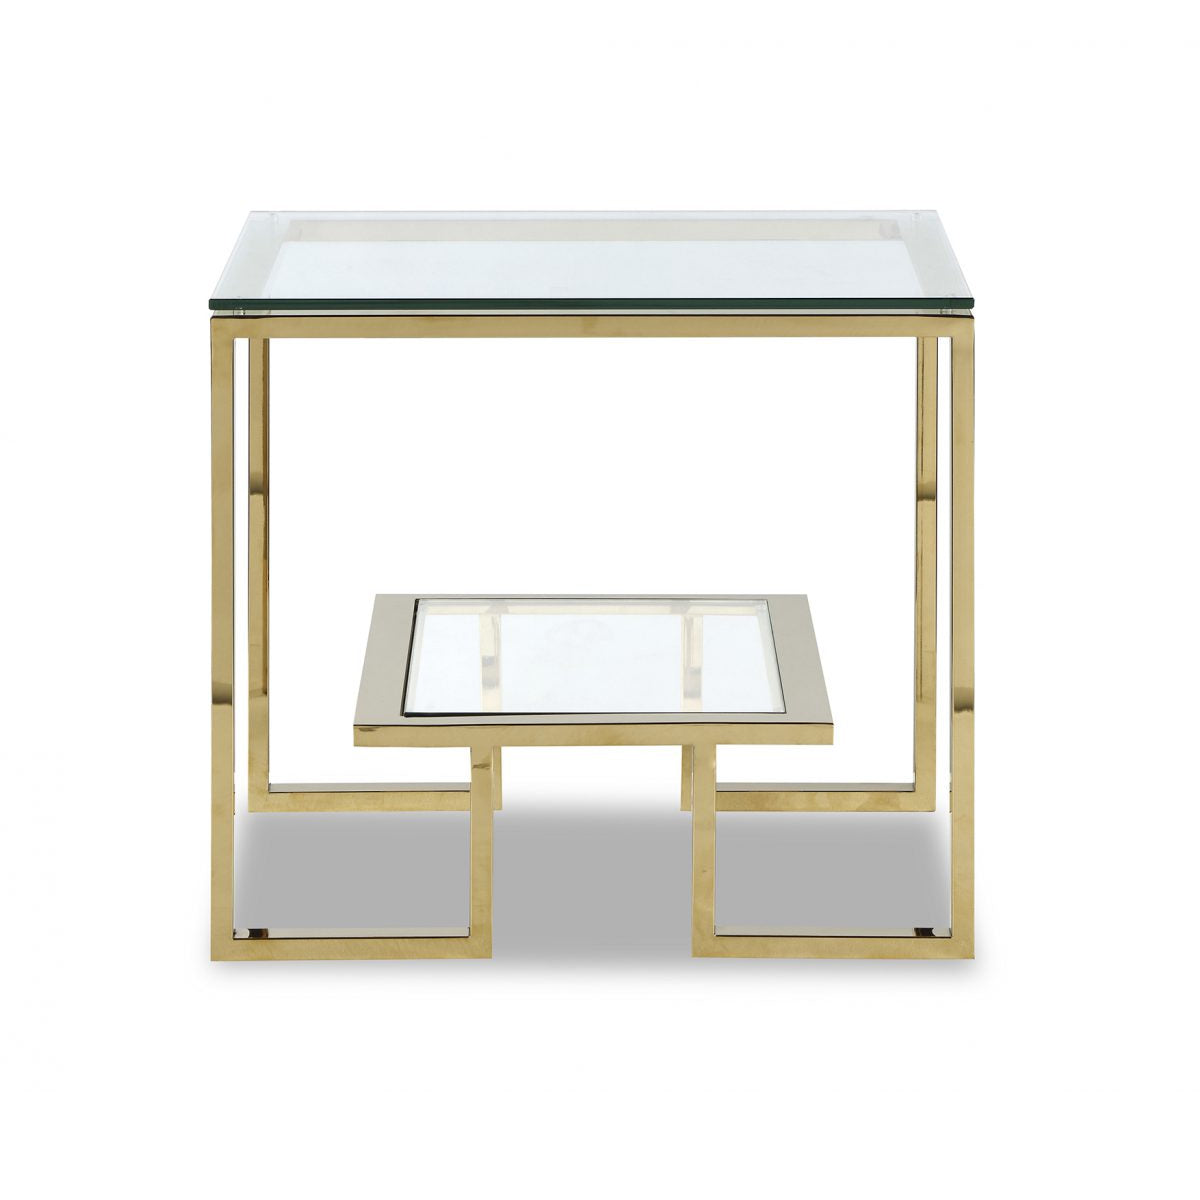 Liang Eimil Mayfair Gold Glass Side Table Shropshire Design